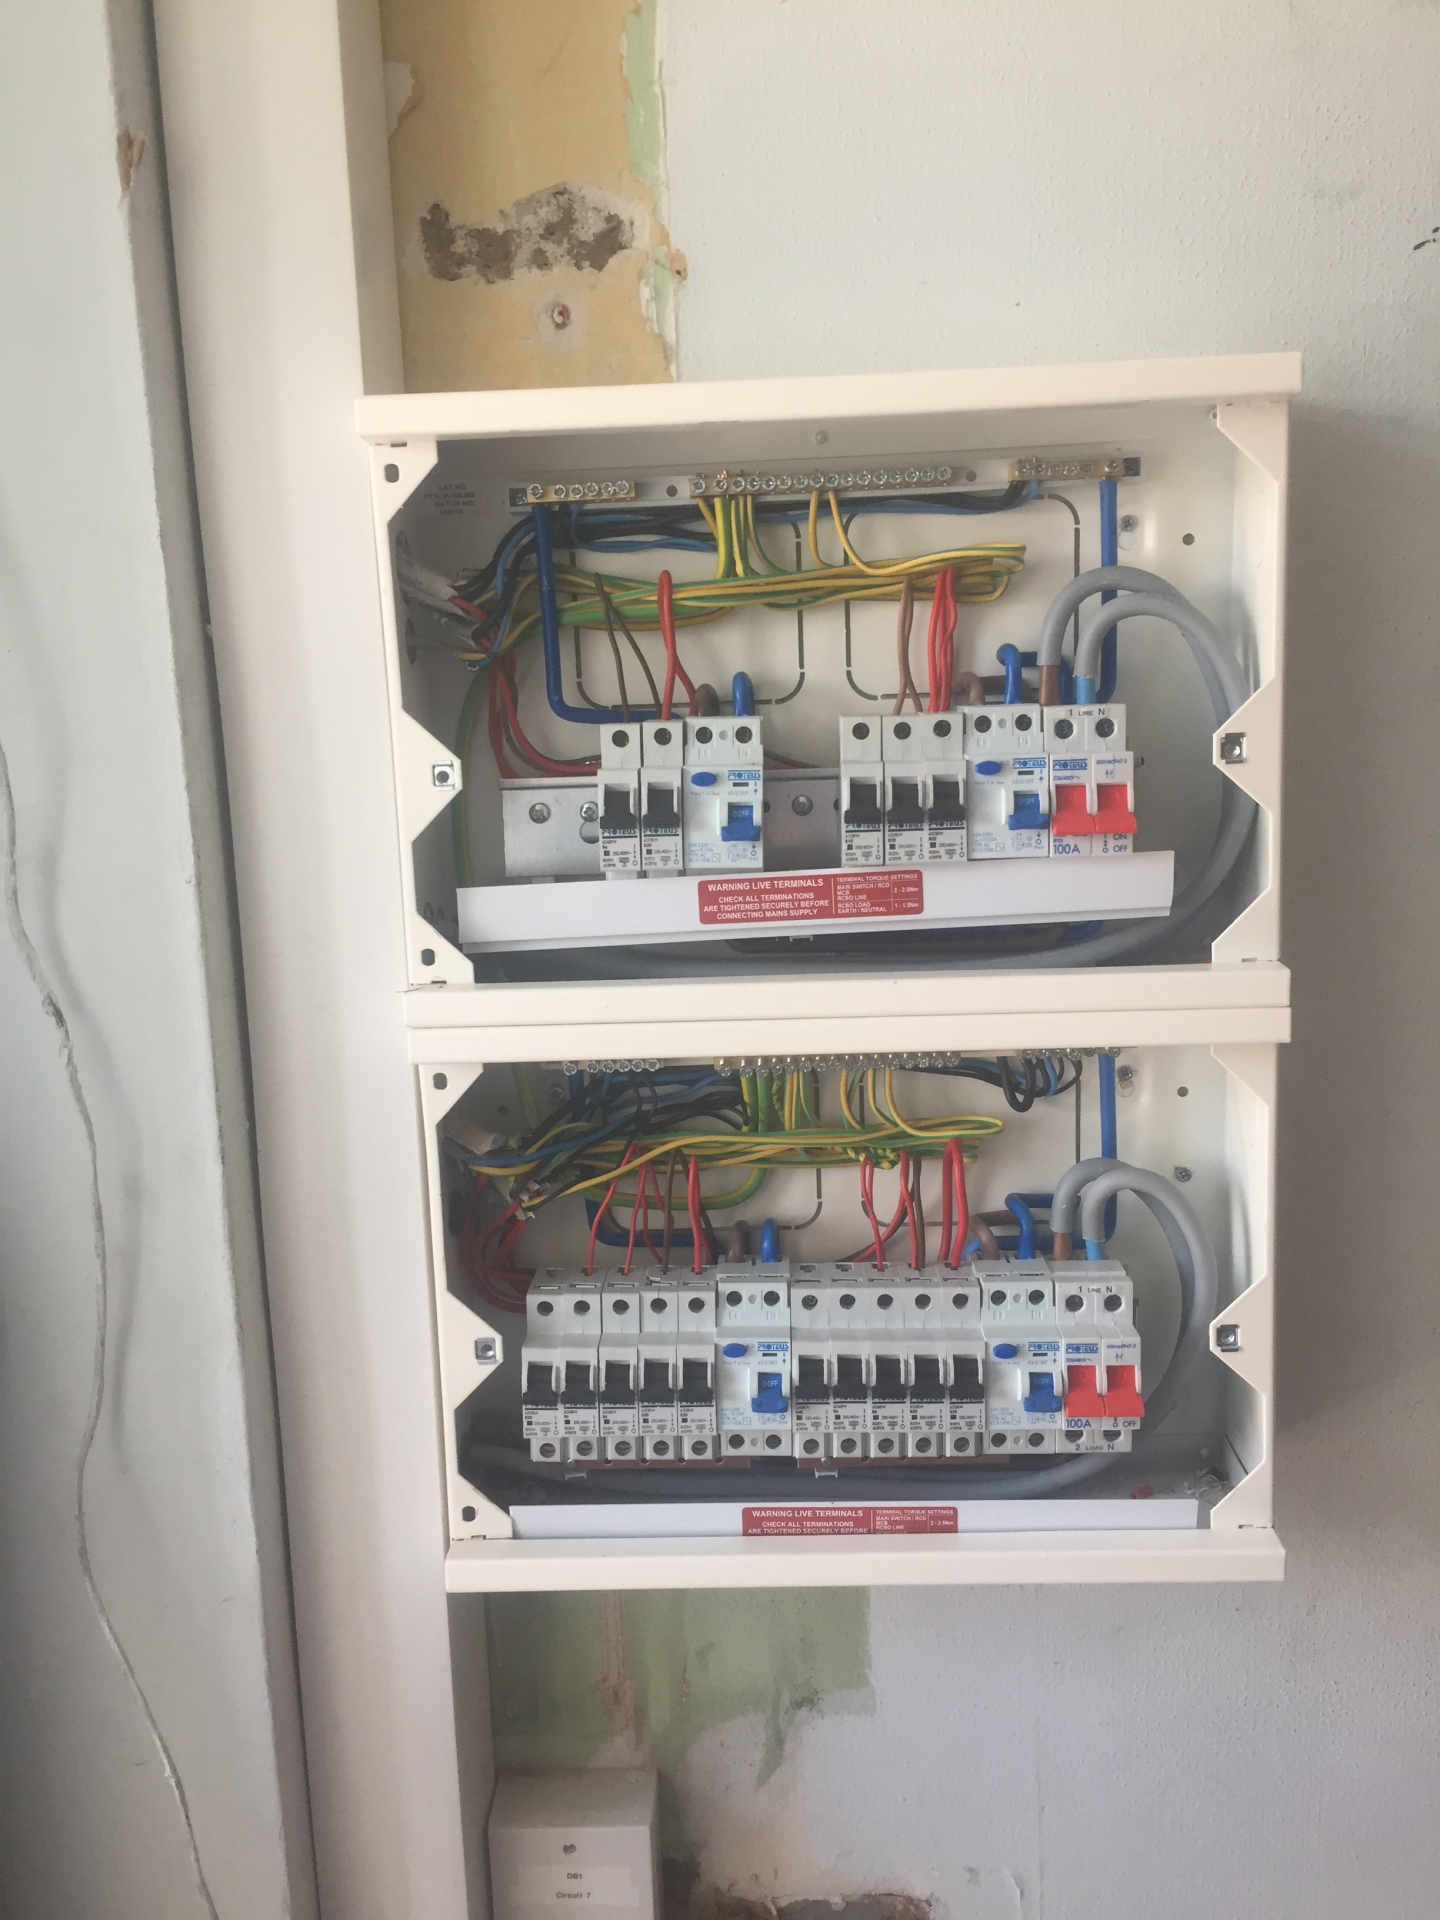 During - Domestic Consumer unit replacement.